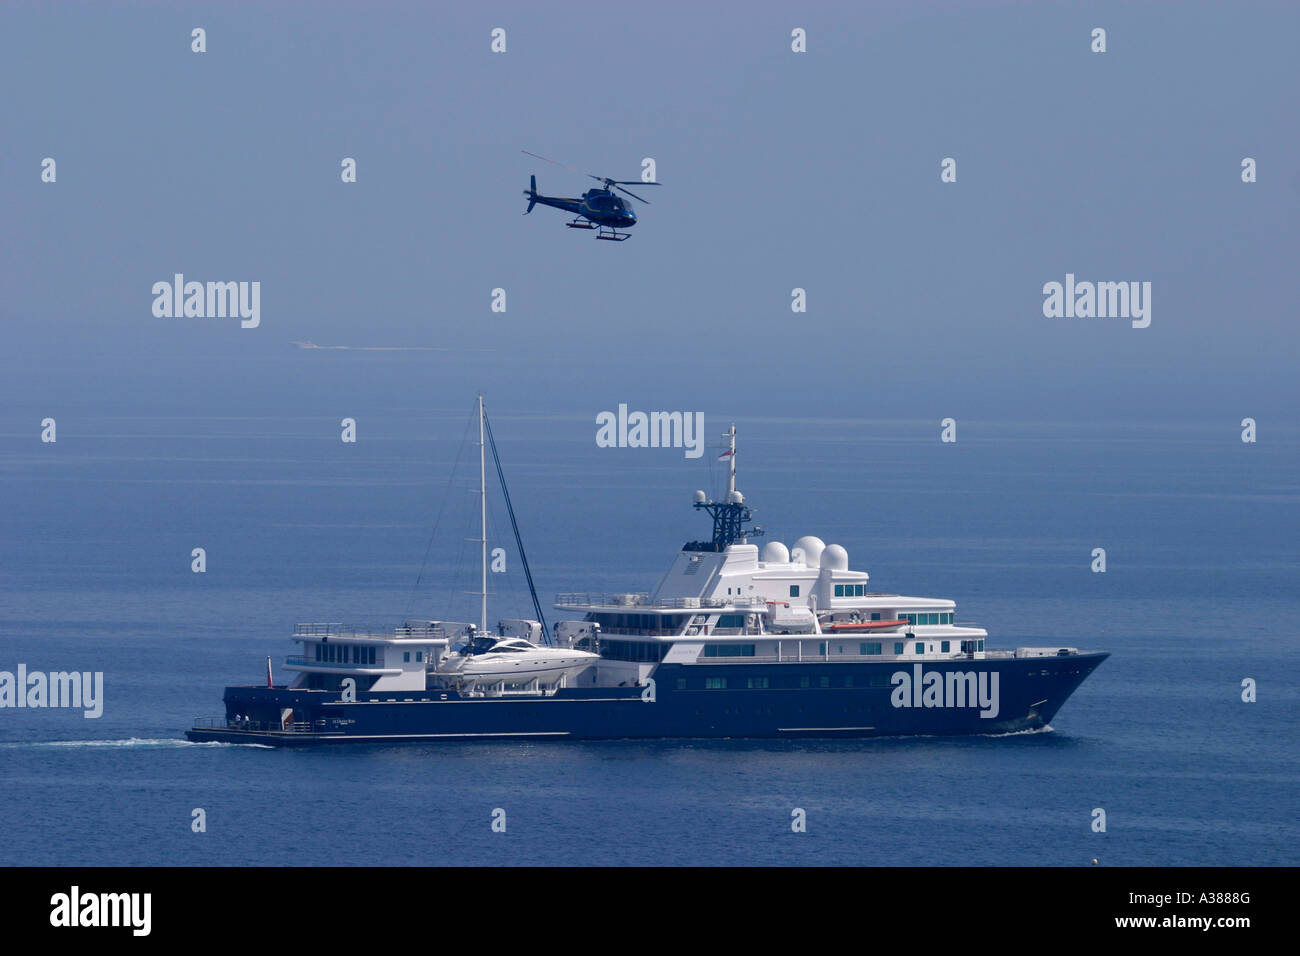 private luxus yacht und hubschrauber stockfoto bild 10702815 alamy. Black Bedroom Furniture Sets. Home Design Ideas